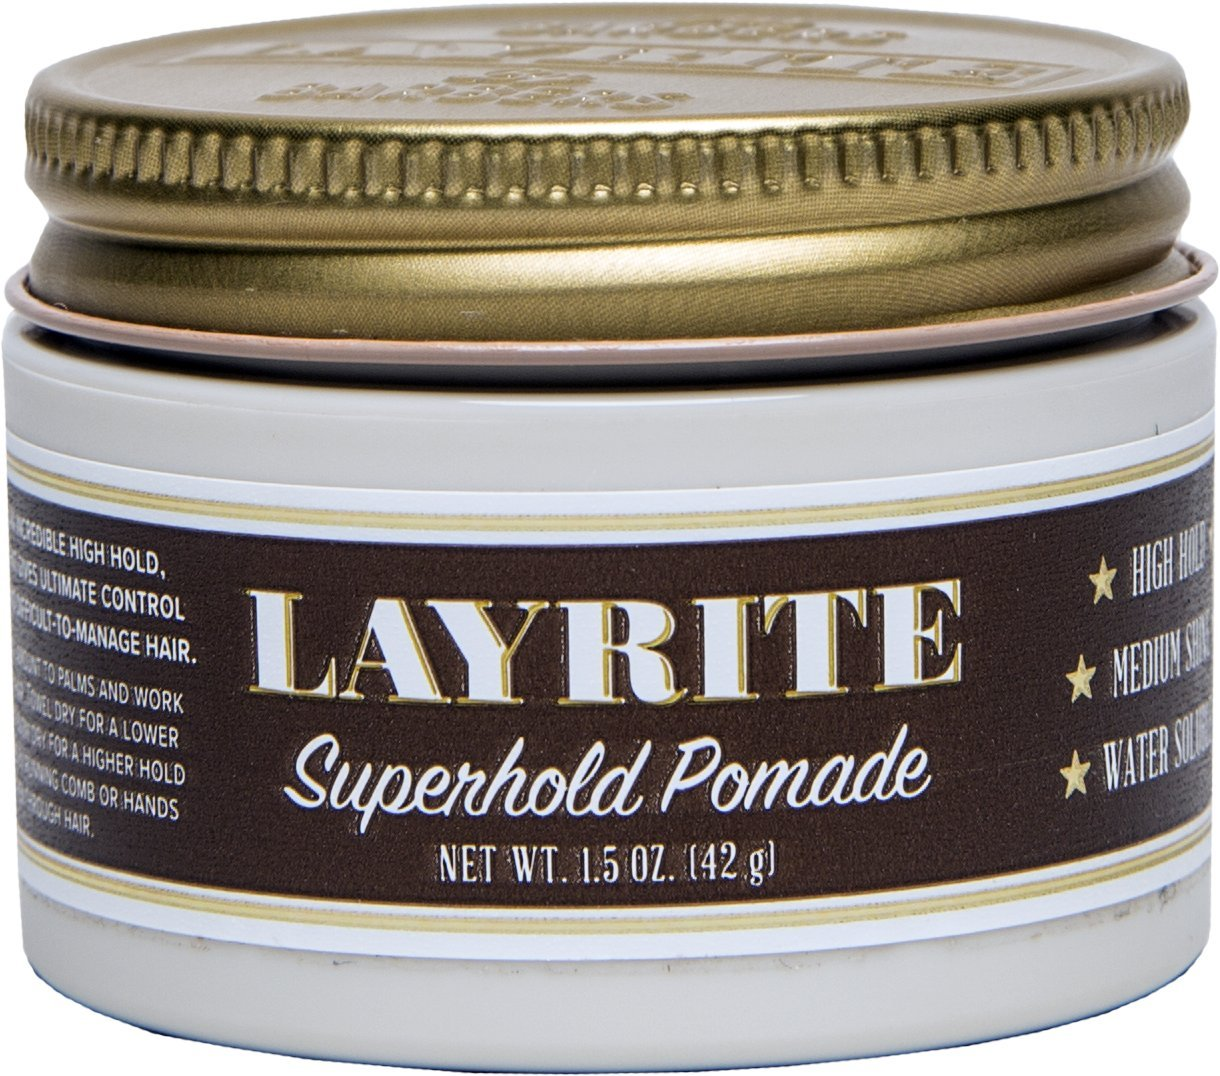 Layrite Super Hold Pomade, 1.5 oz.